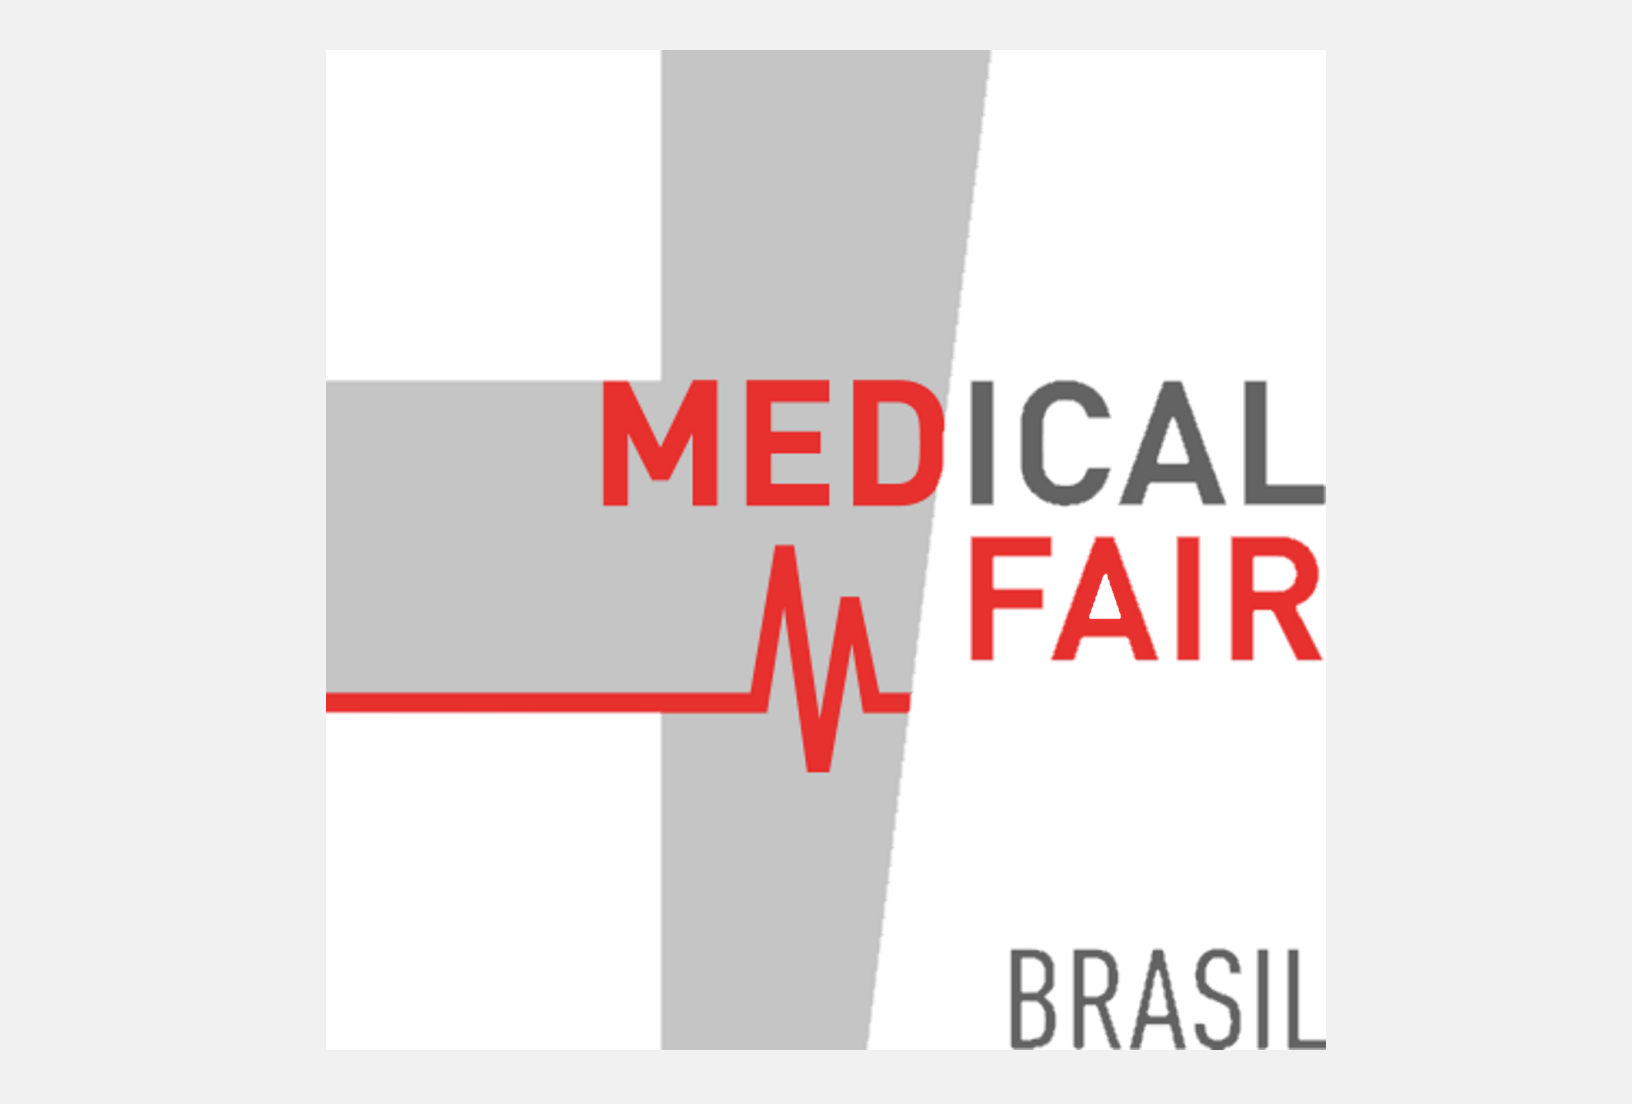 Medical Fair in Brasil